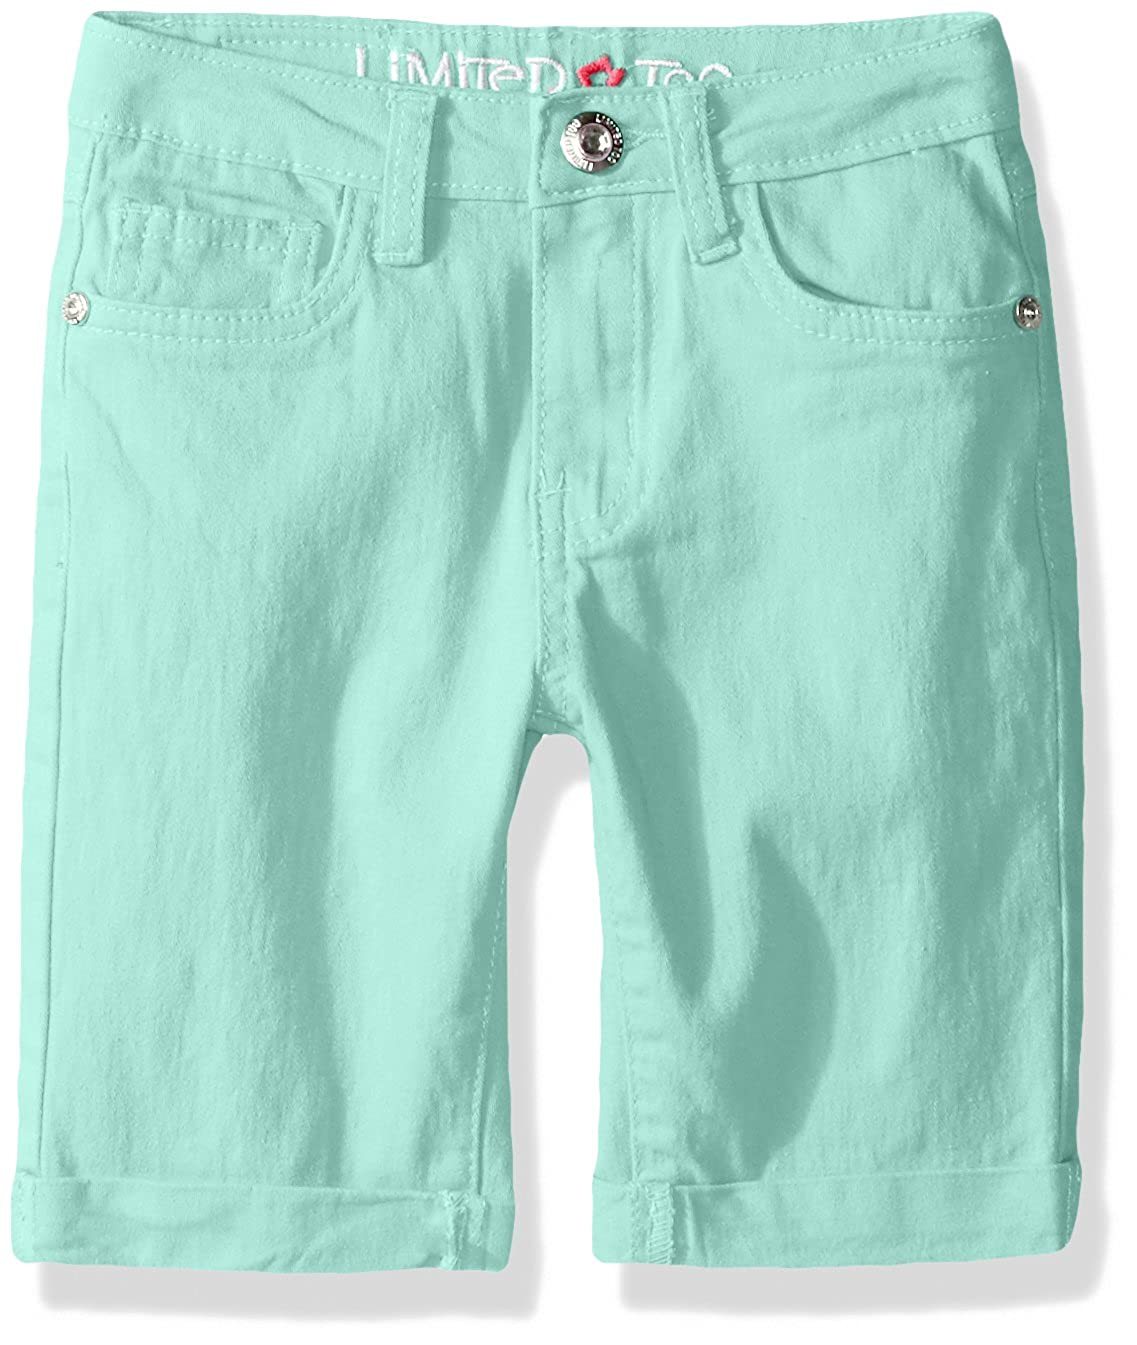 Limited Too Little Girls Stretch Twill Bermuda Short 2713 Neon Coral